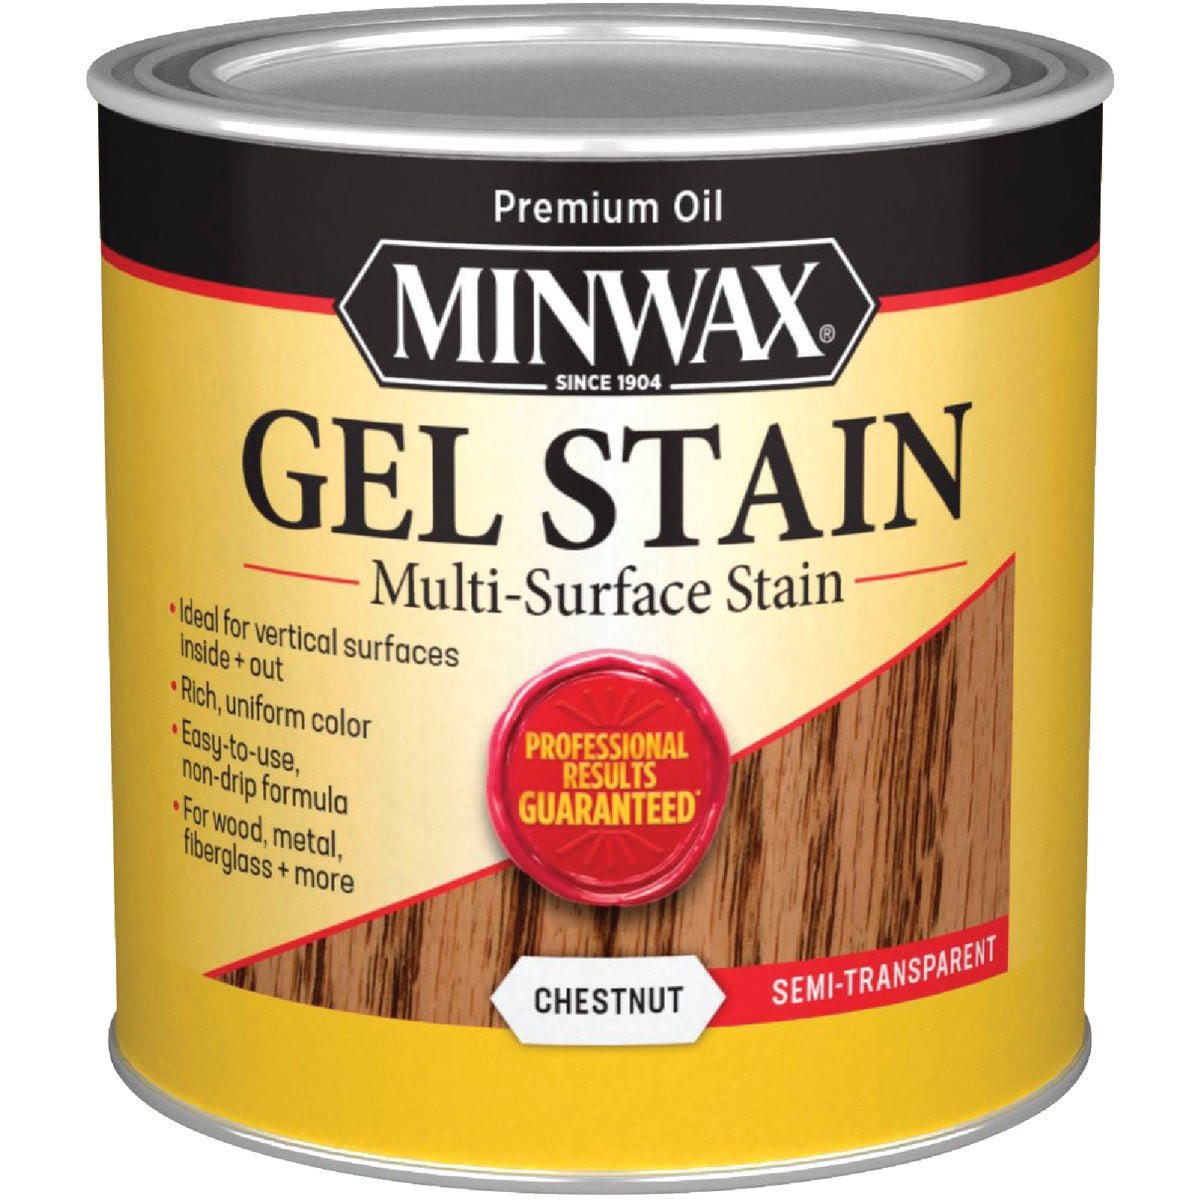 CHESTNUT GEL STAIN - 260104444 by Minwax Company